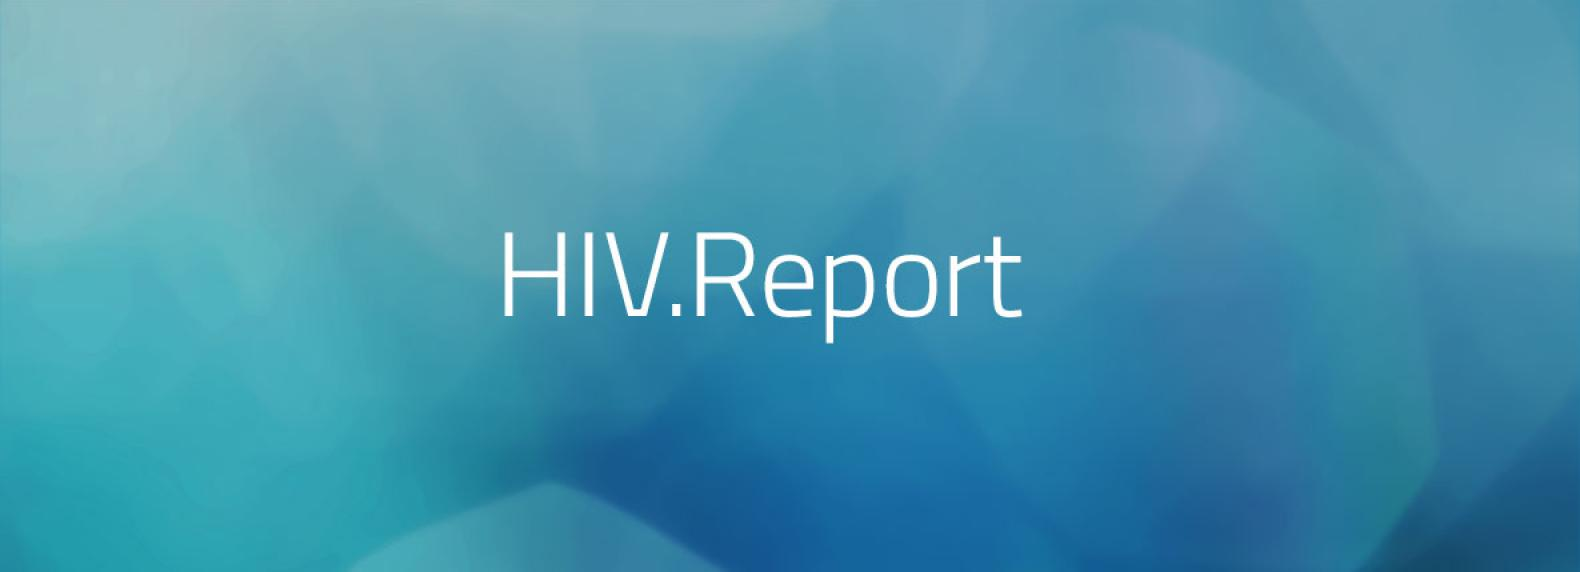 Logo HIV.Report